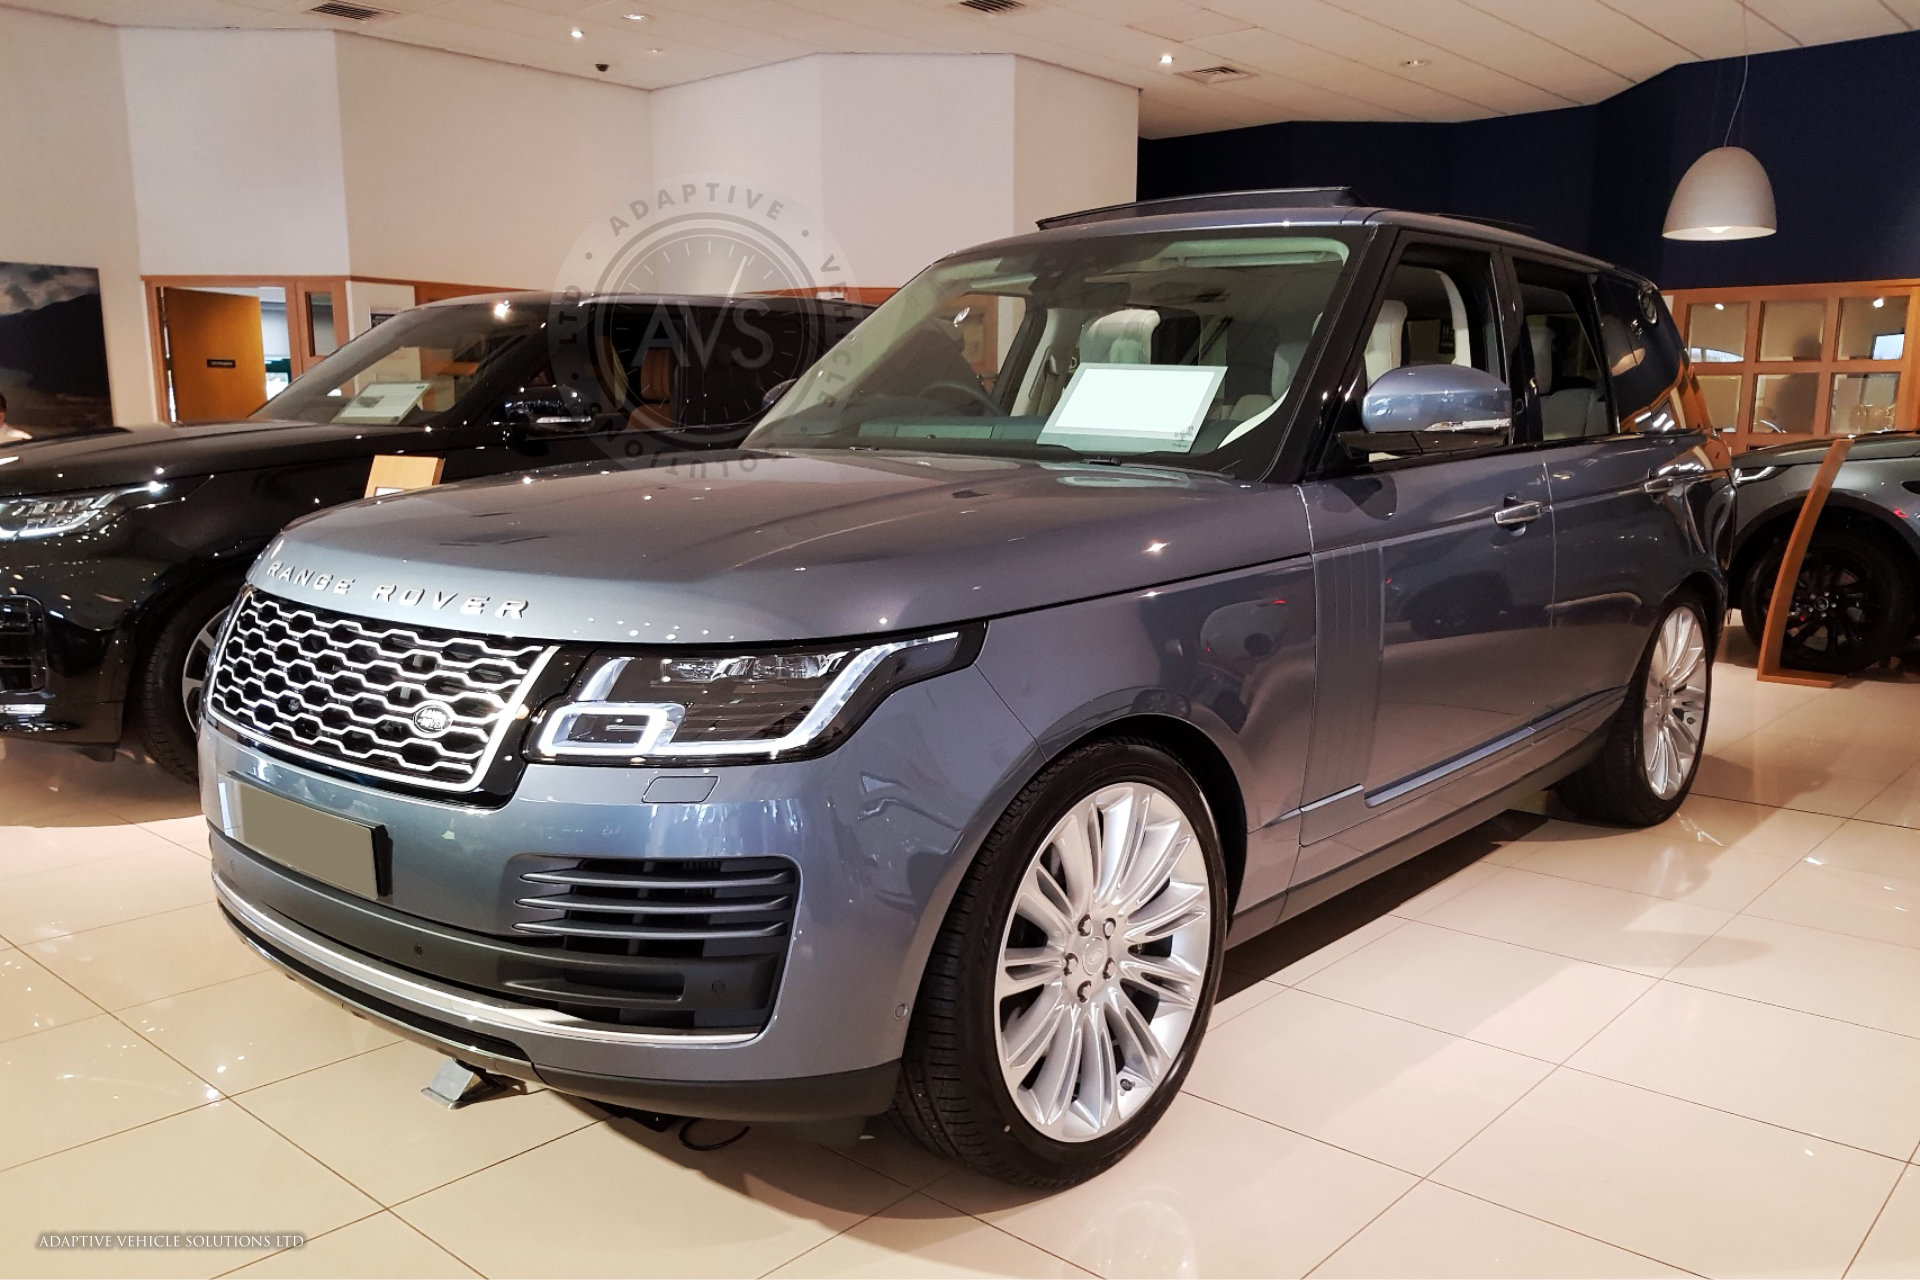 2018 Range Rover Vogue 8 Adaptive Vehicle Solutions Ltd